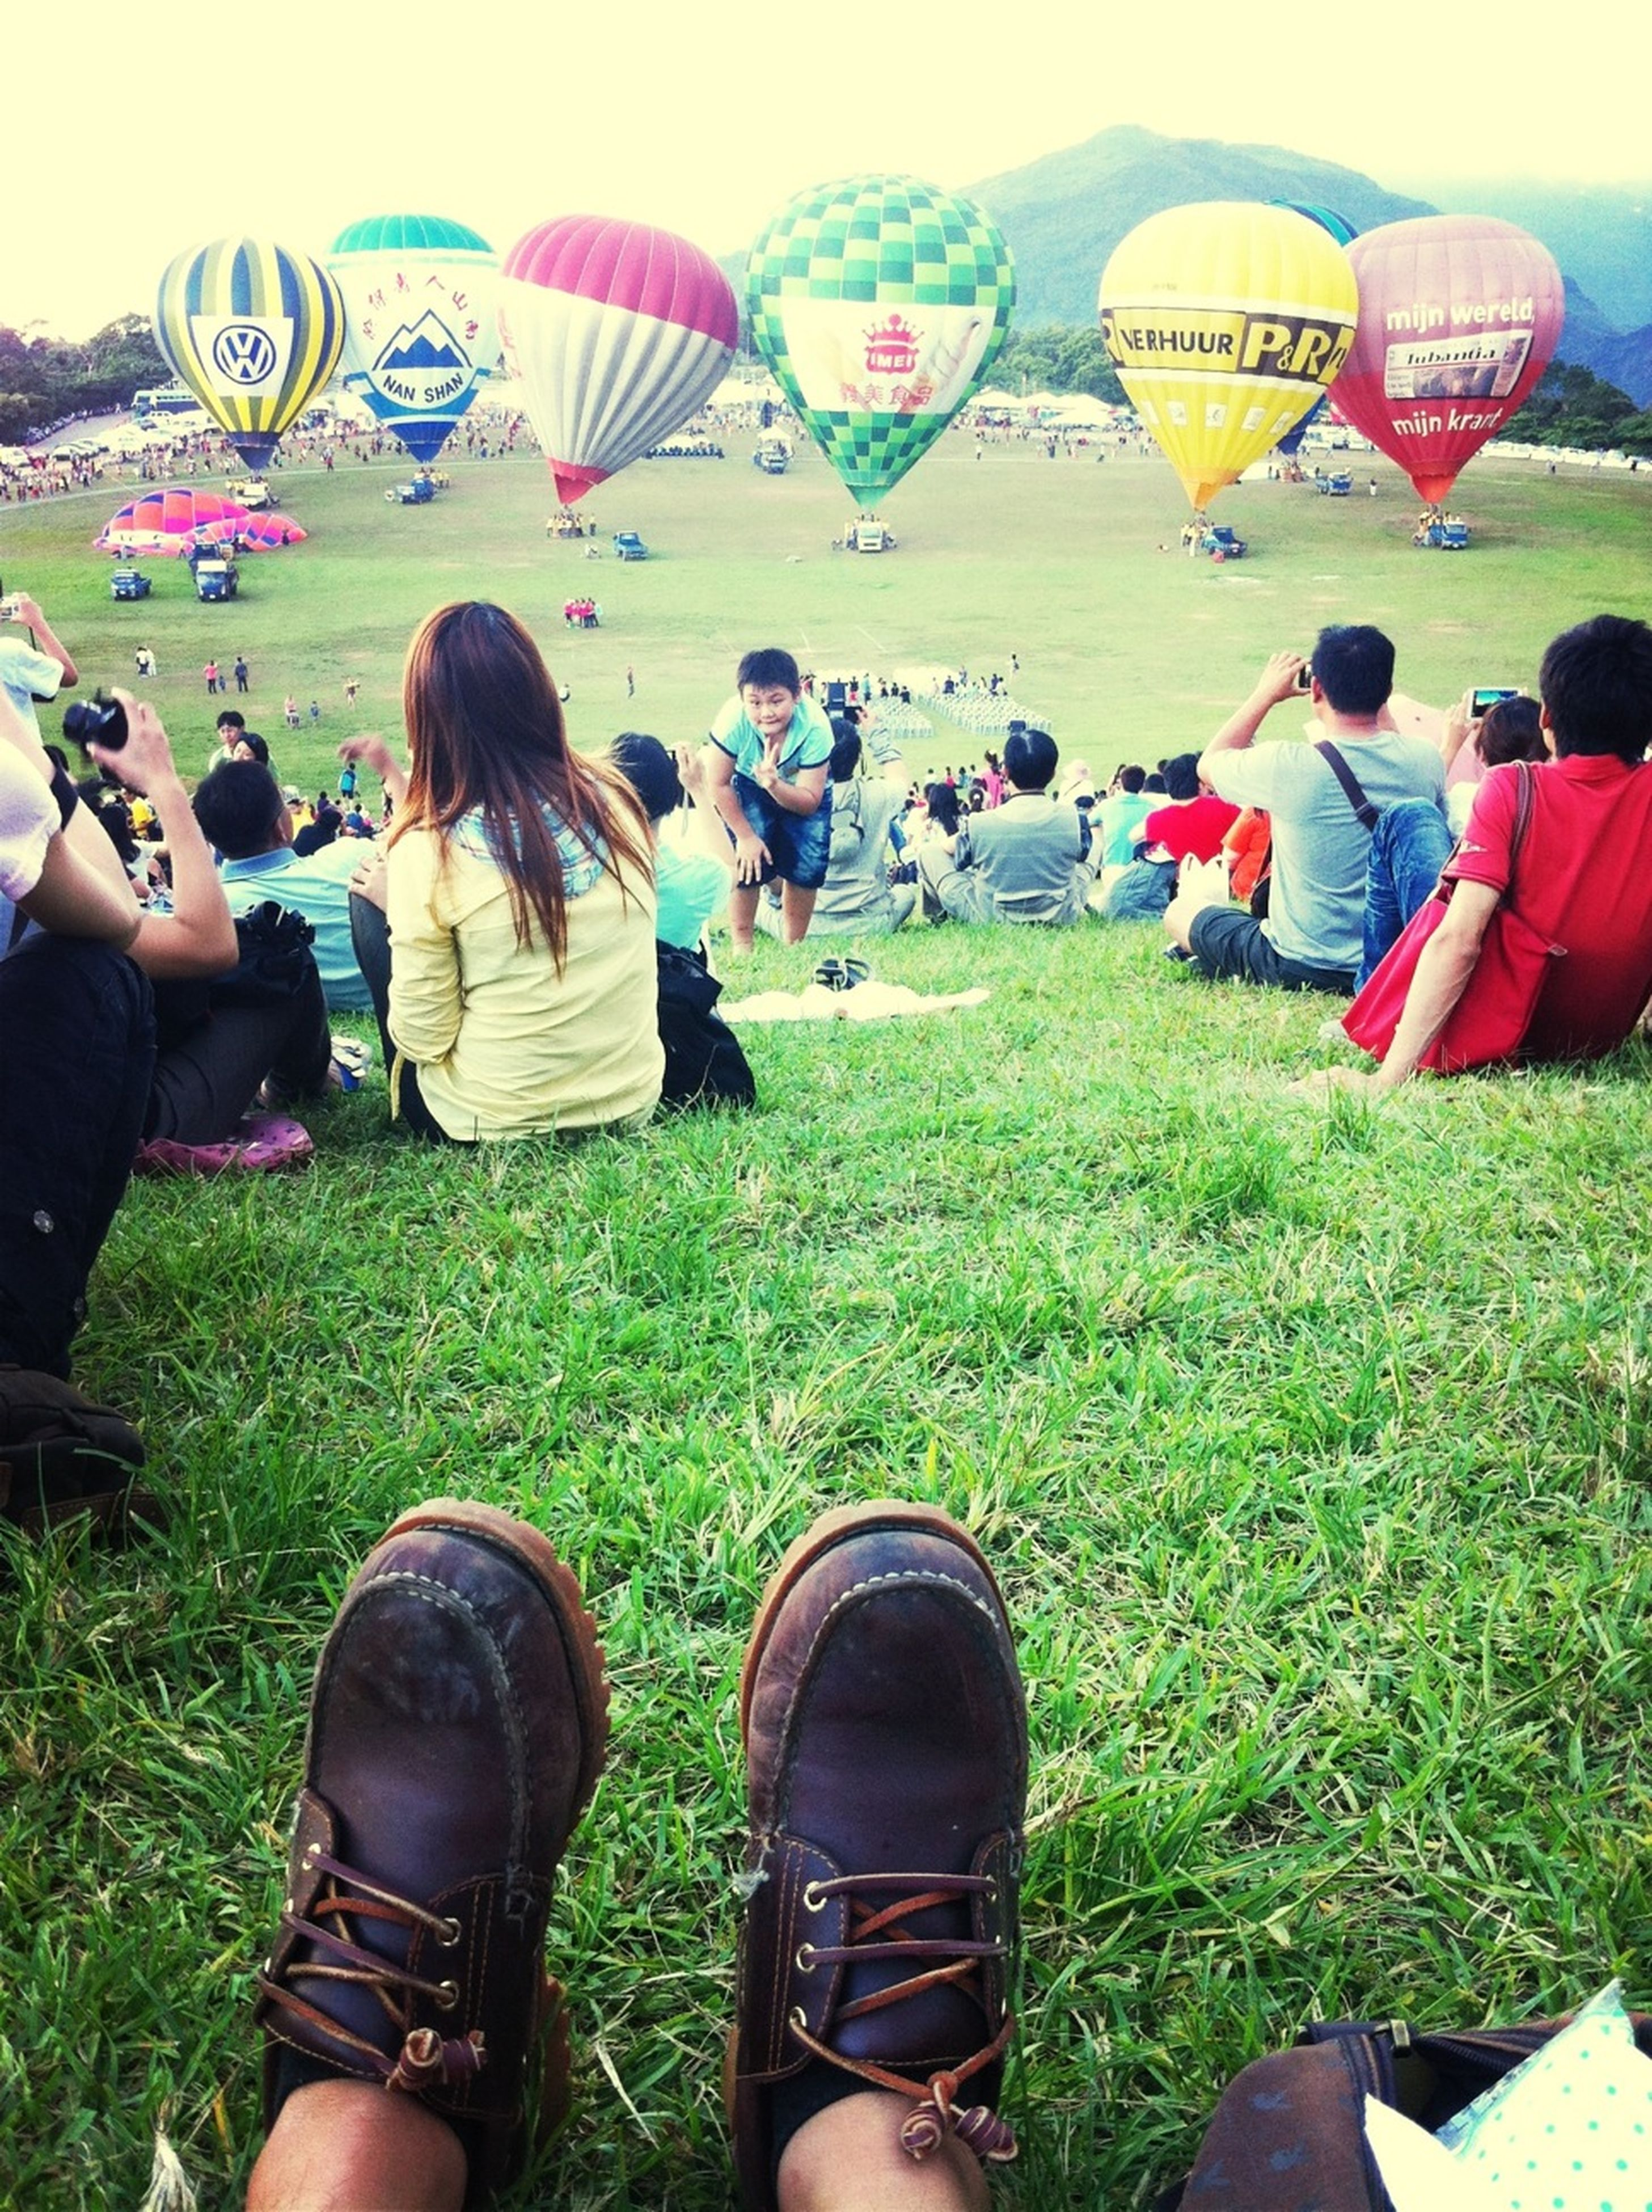 grass, lifestyles, leisure activity, low section, men, large group of people, person, field, shoe, relaxation, sitting, togetherness, grassy, standing, friendship, casual clothing, personal perspective